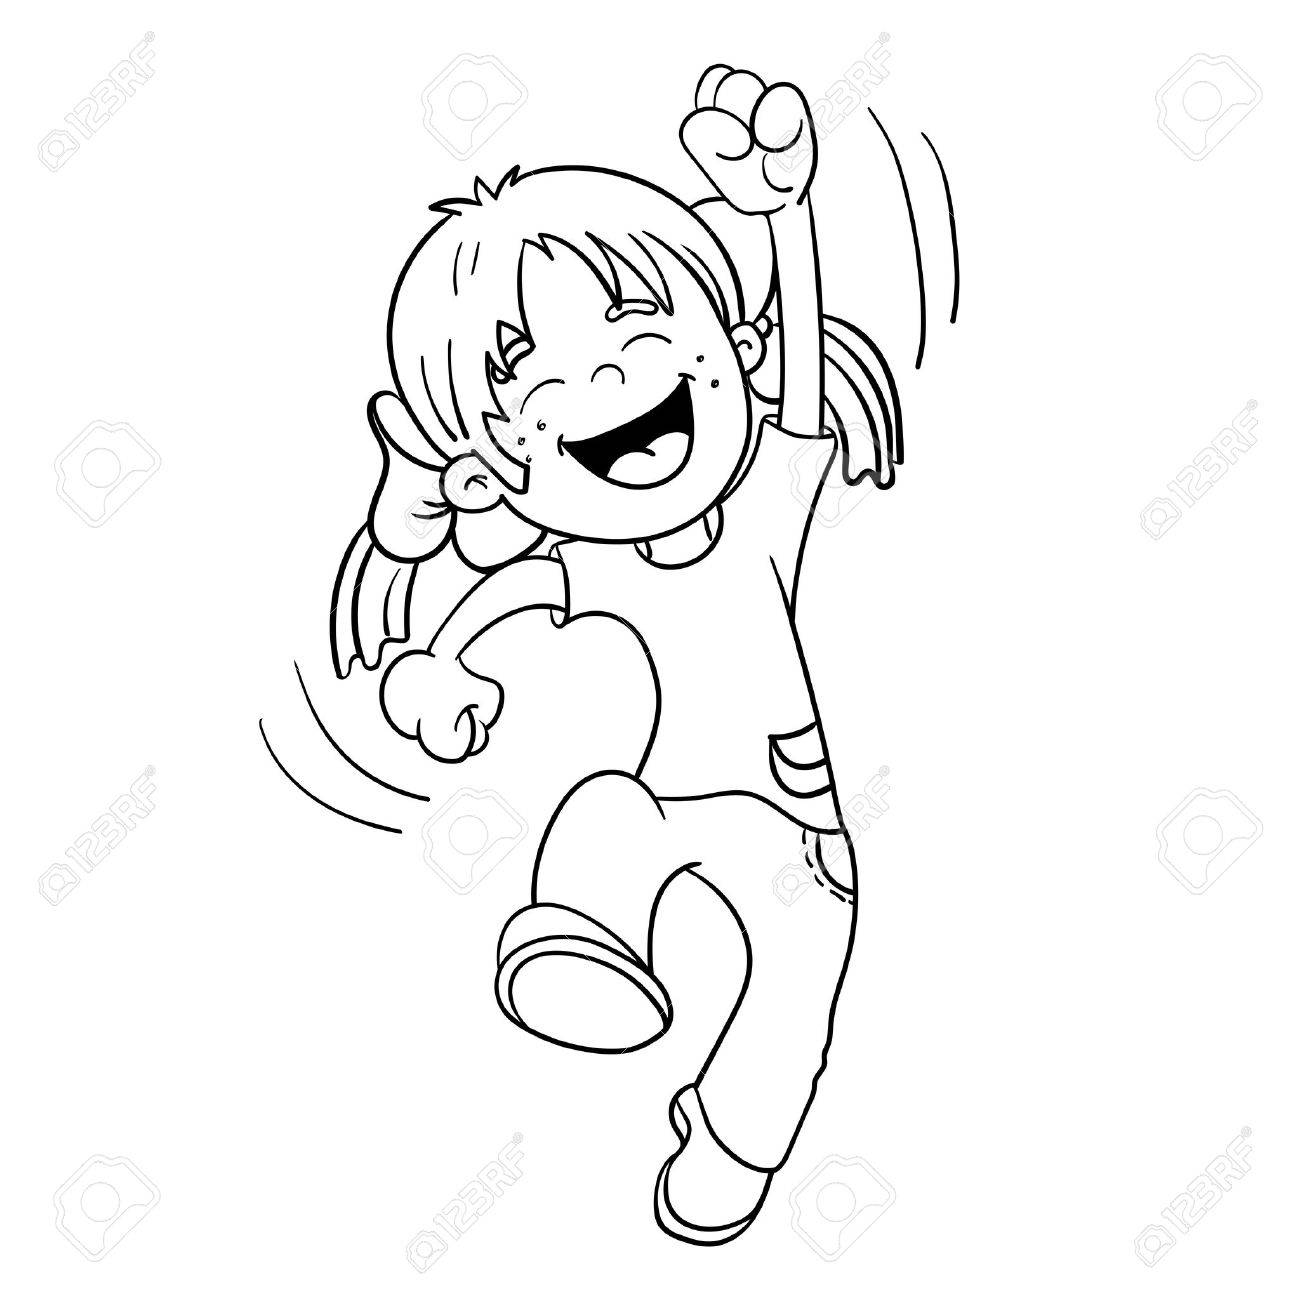 Coloring Page Outline Of A Cartoon Jumping Girl Royalty Free ...